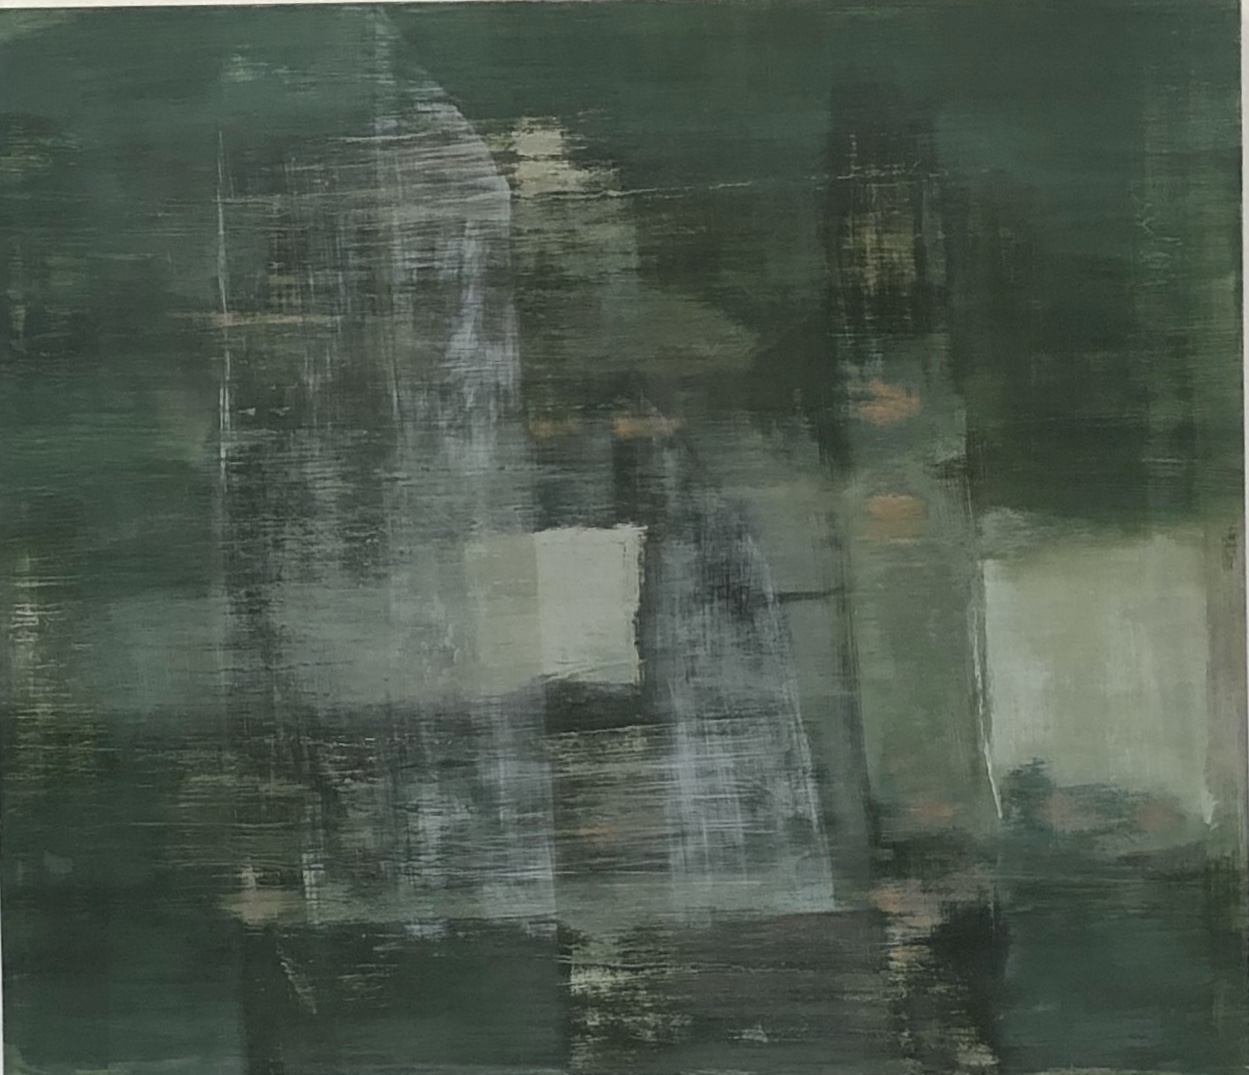 Vertical Green 2019 30 x 26 x 2.5in oil on wood photo: Sasha Schell